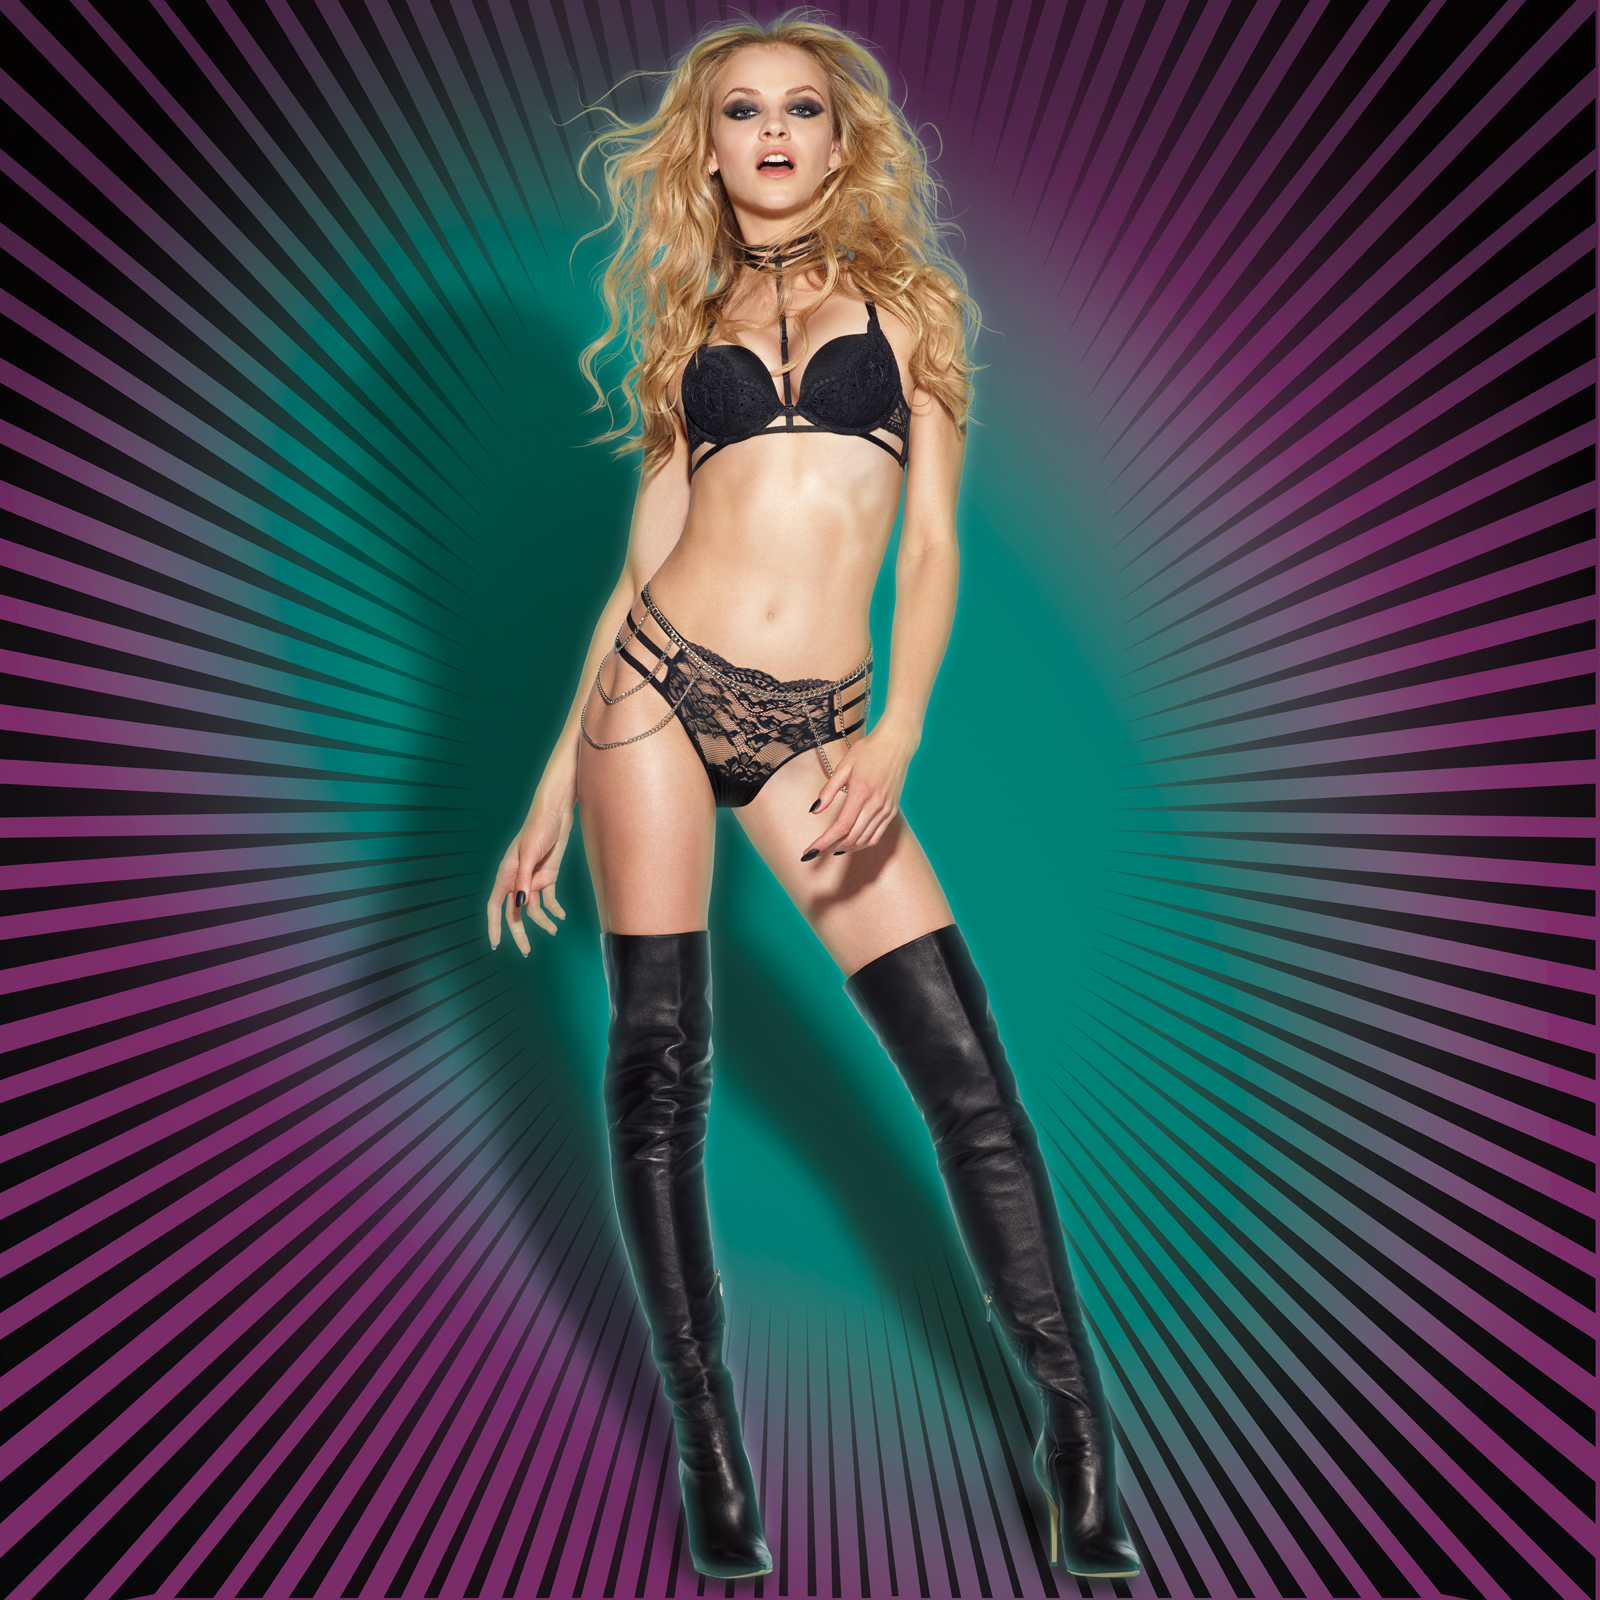 Famously sexy, infamously naughty.  The fashion destination for the hottest trends in bras, panties and playfully sexy lingerie at guilt-free prices..